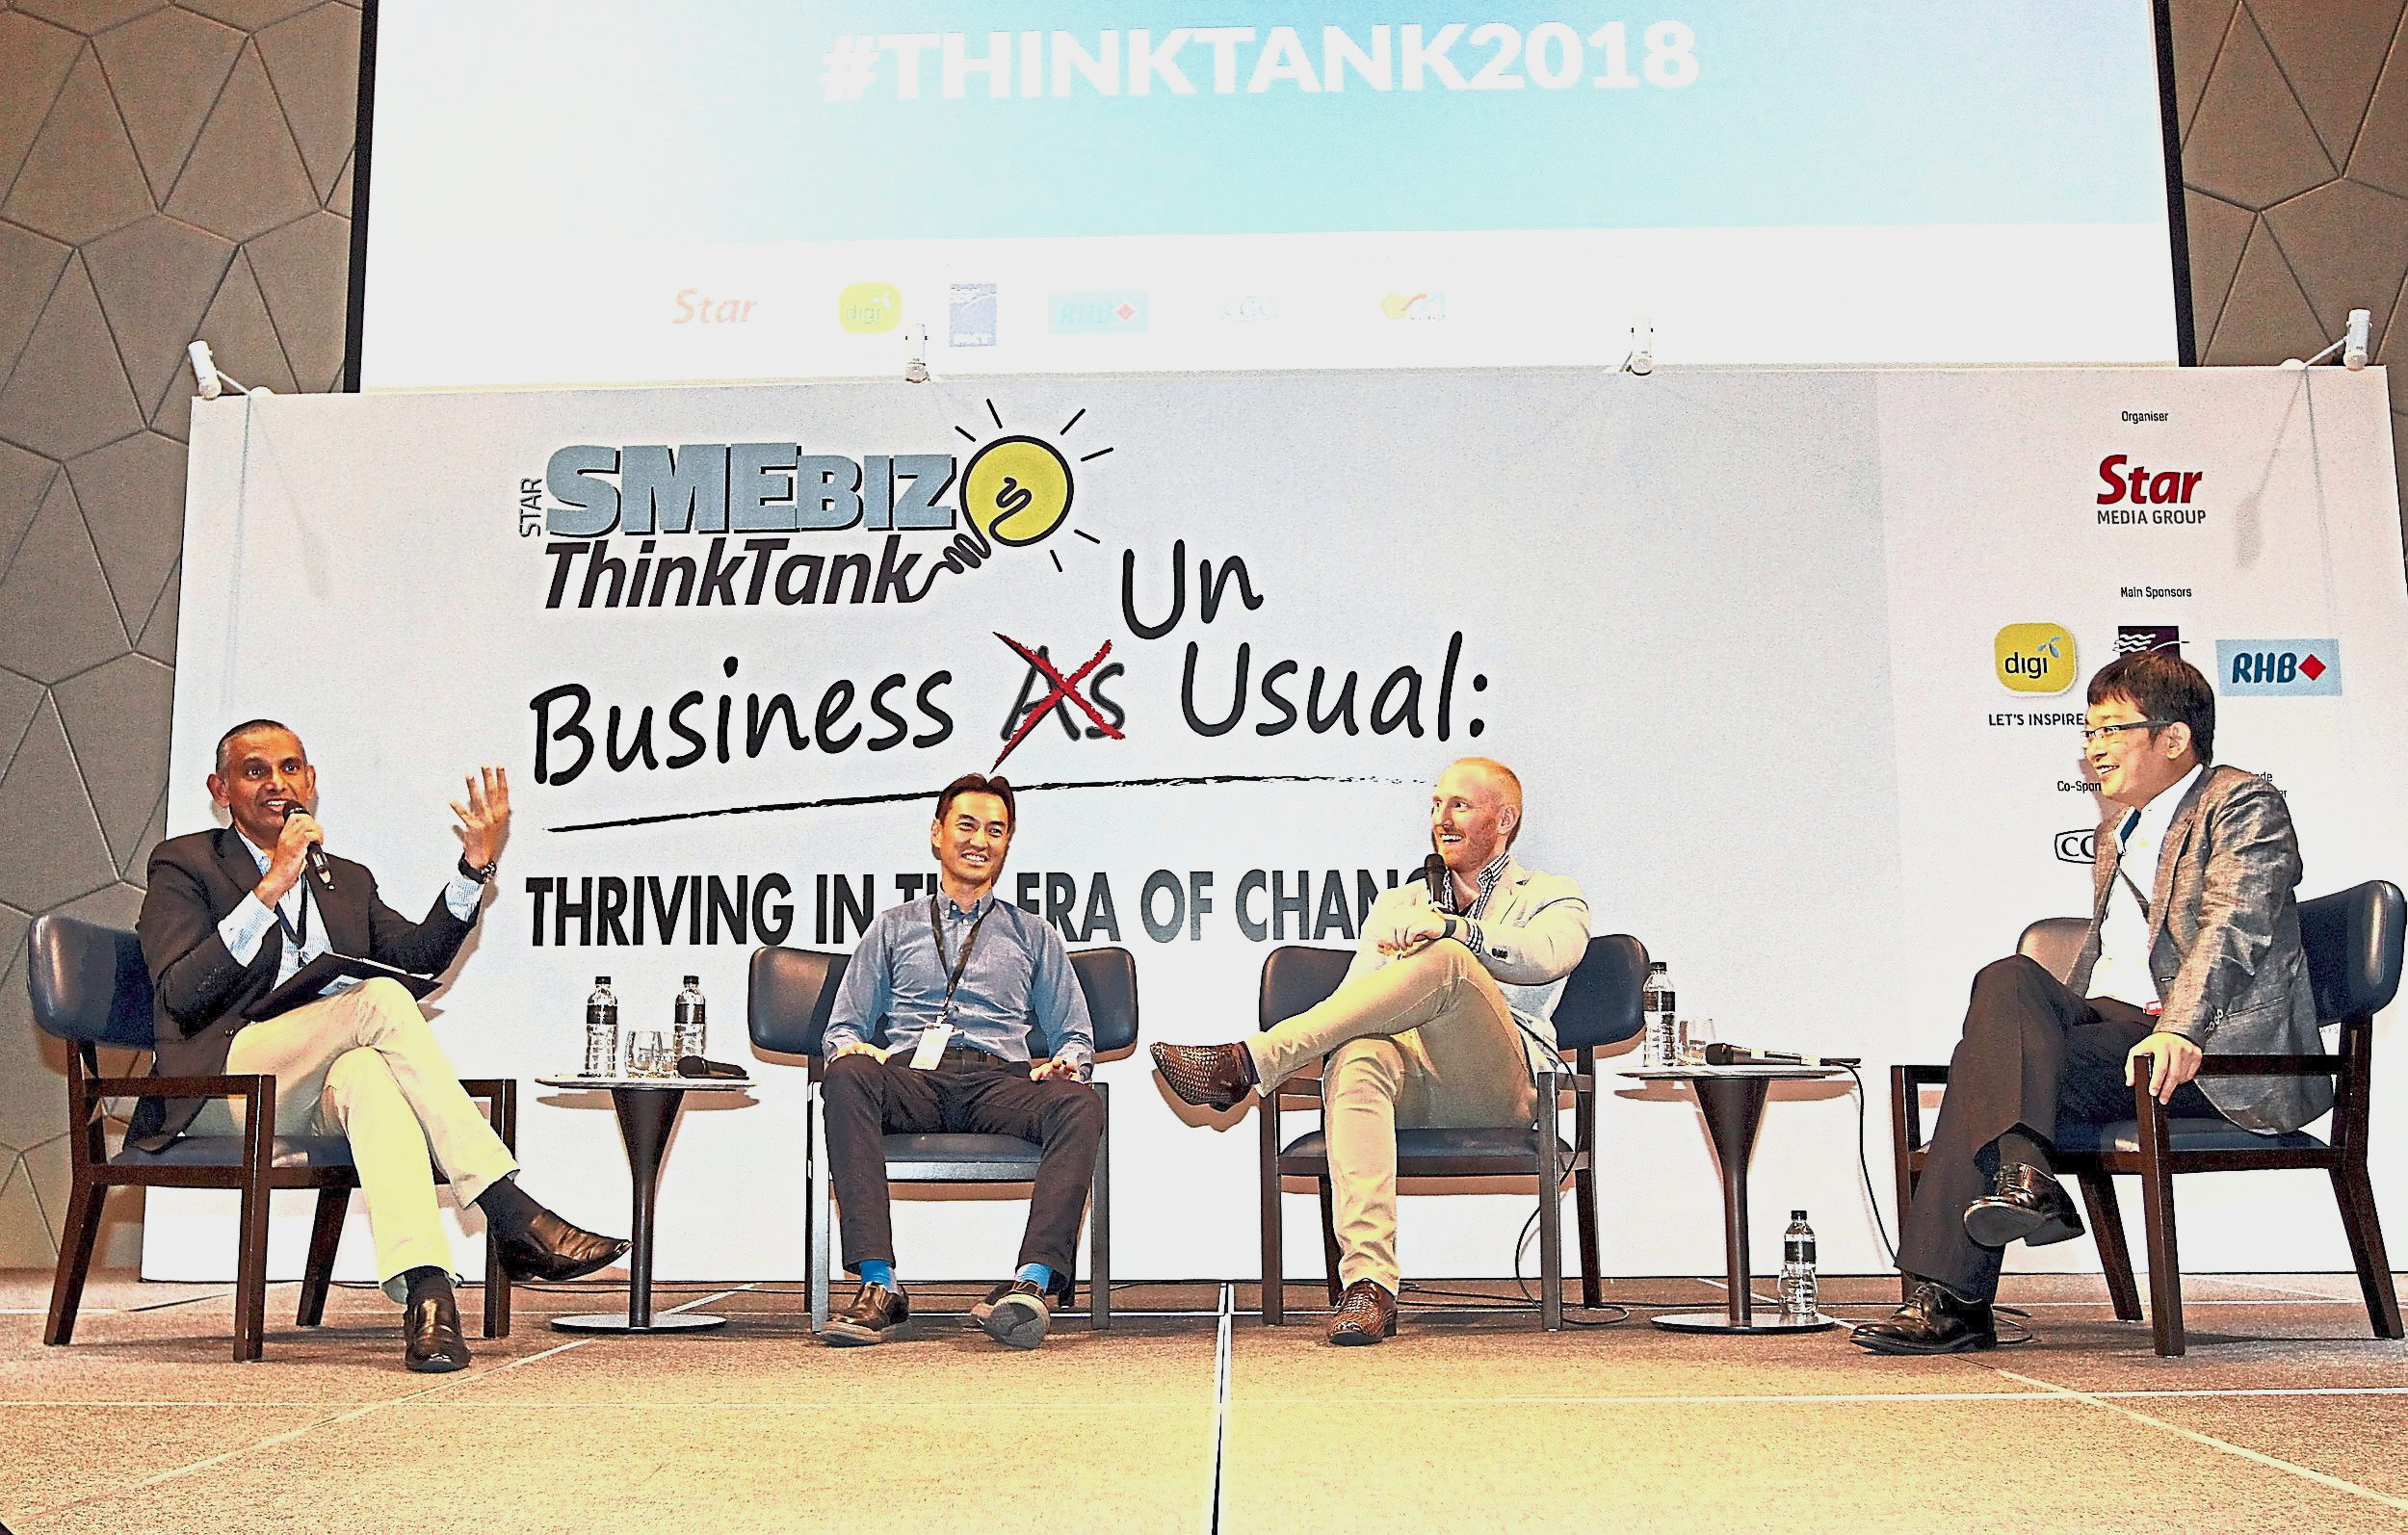 Malaysian Associated Indian Chambers of Commerce and Industry secretary-general Datuk Dr A.T. Kumararajah (left) moderating a discussion with (from second left) Aemulus chief executive officer  Ng Sang Beng, Supahands sales vice-president Greg Meehan and Digi chief business officer Eugene Teh during the Star SMEBiz ThinkTank 2018 at New World Petaling Jaya Hotel. u2014 Photos: SAMUEL ONG and AZMAN GHANI/ The Star